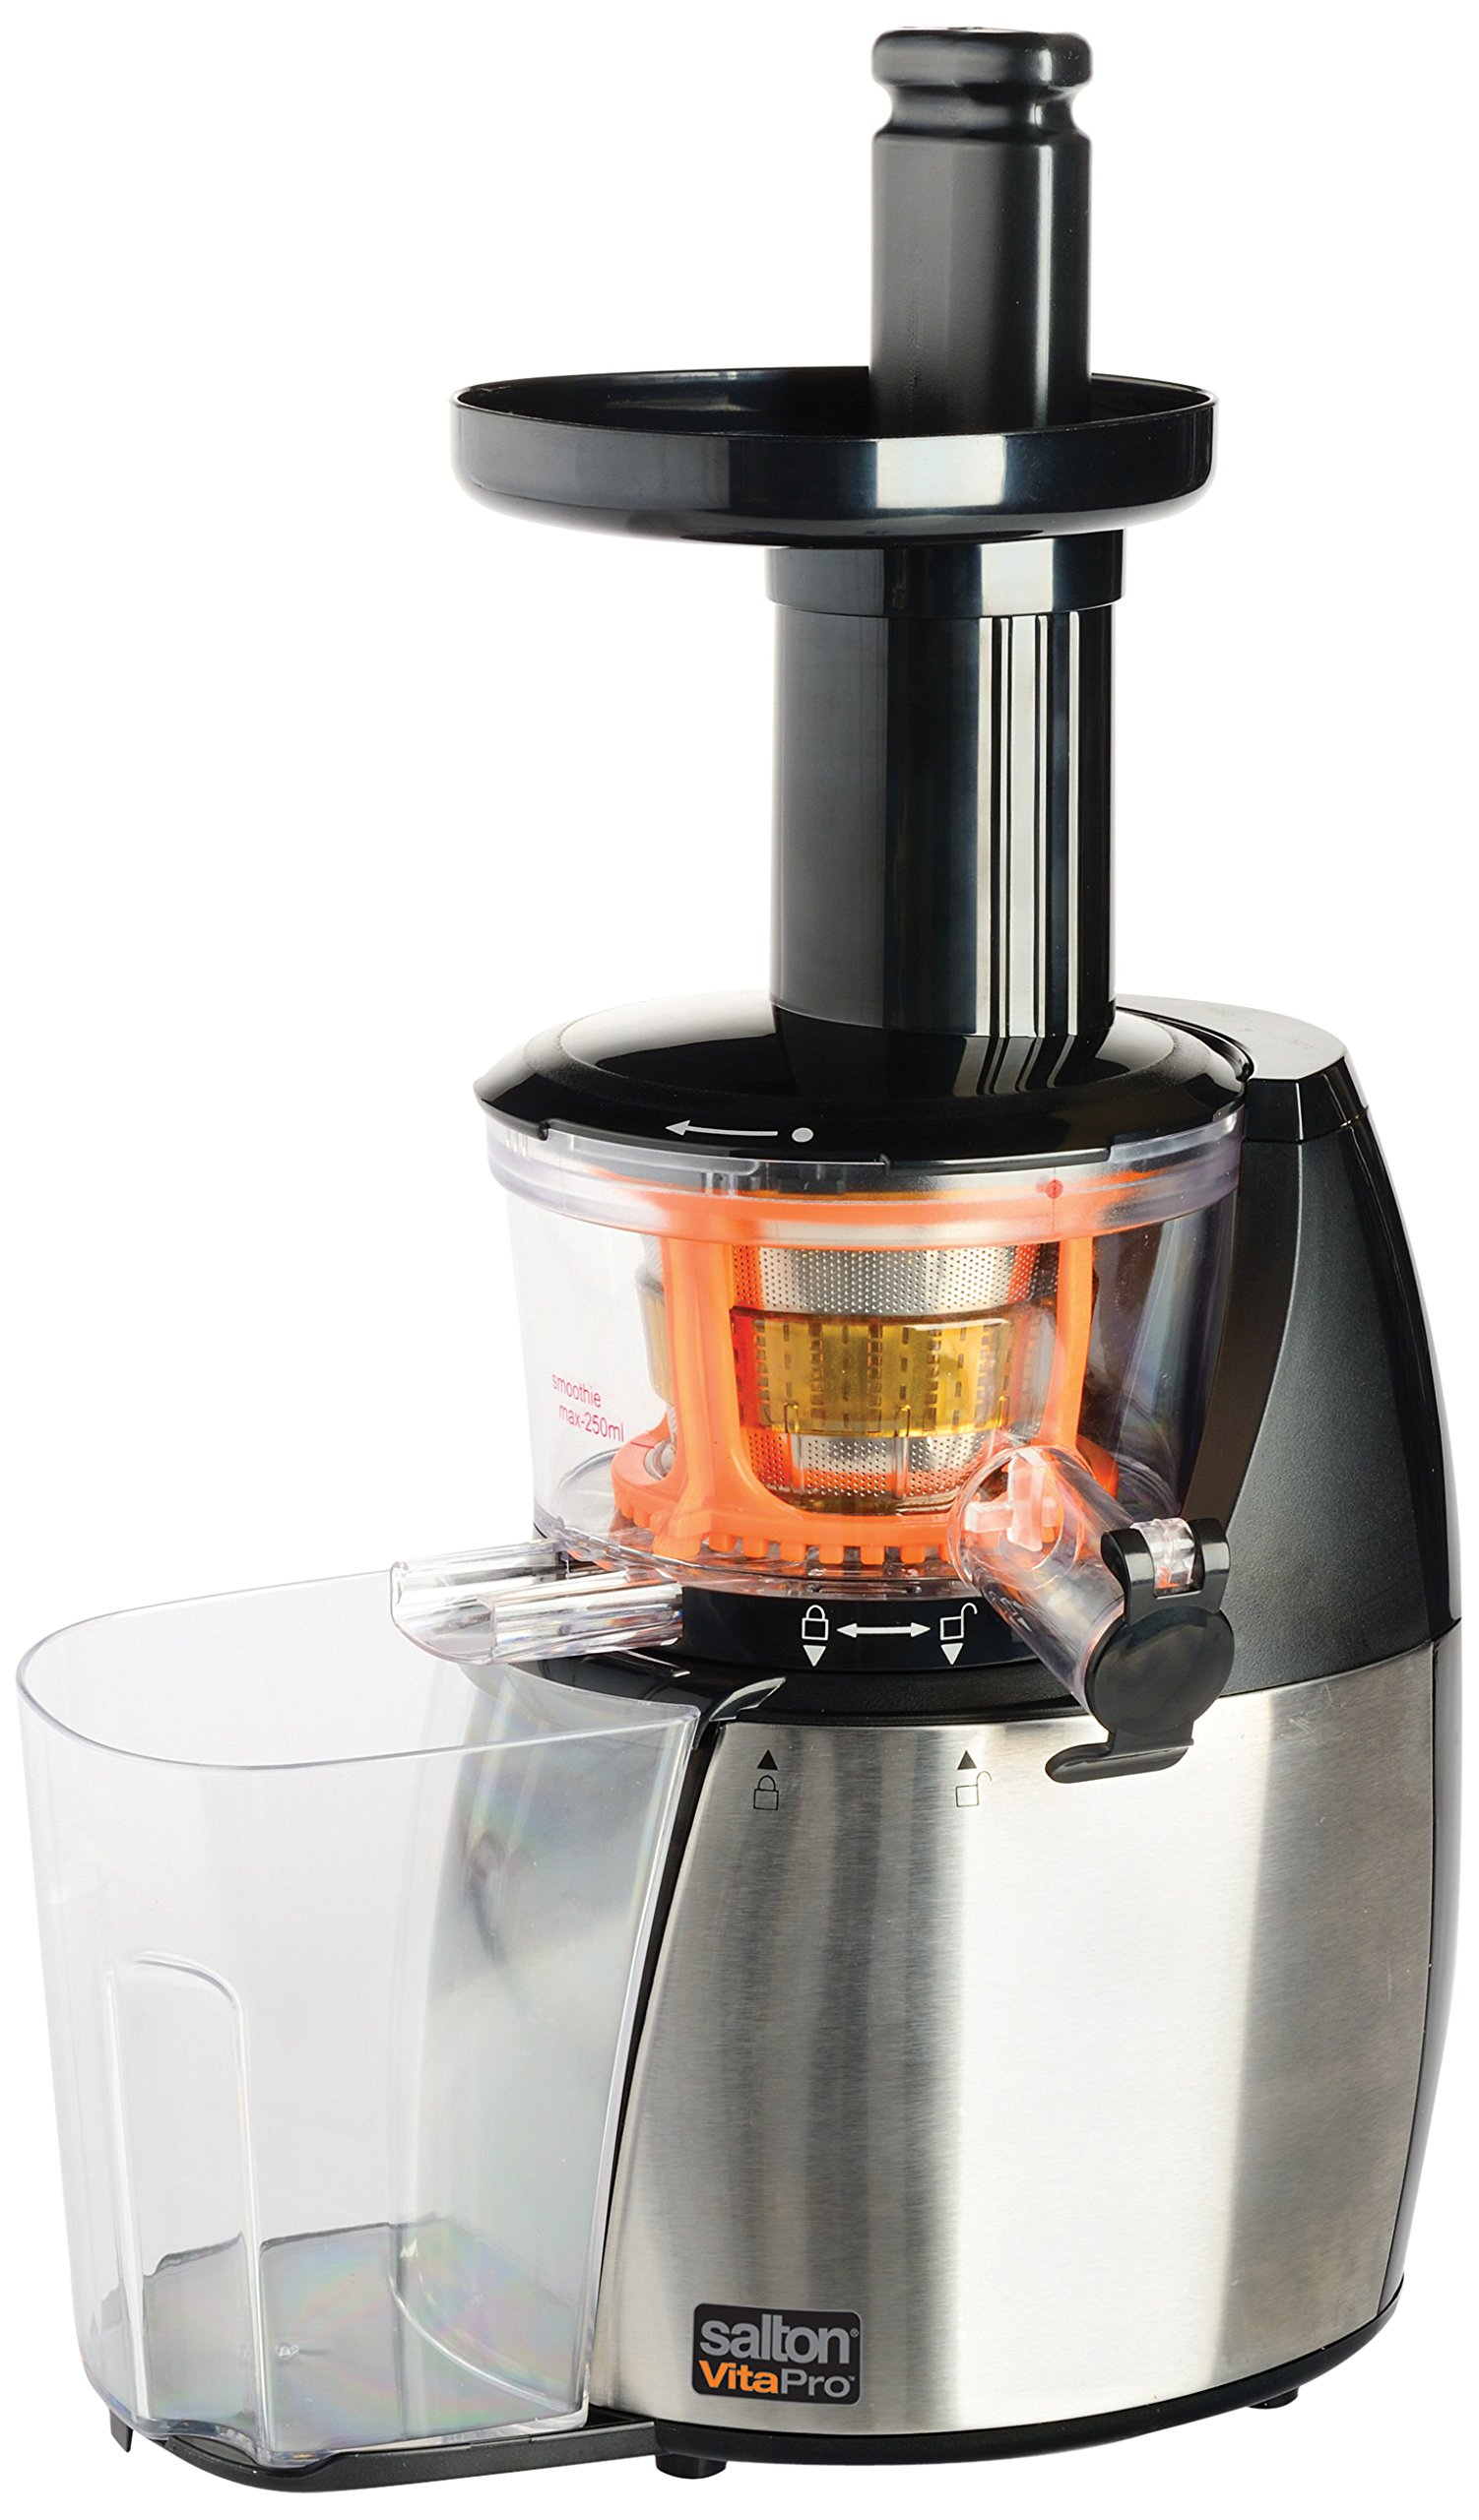 Salton JE1372PL Low Speed Juicer and Smoothie Maker by Salton